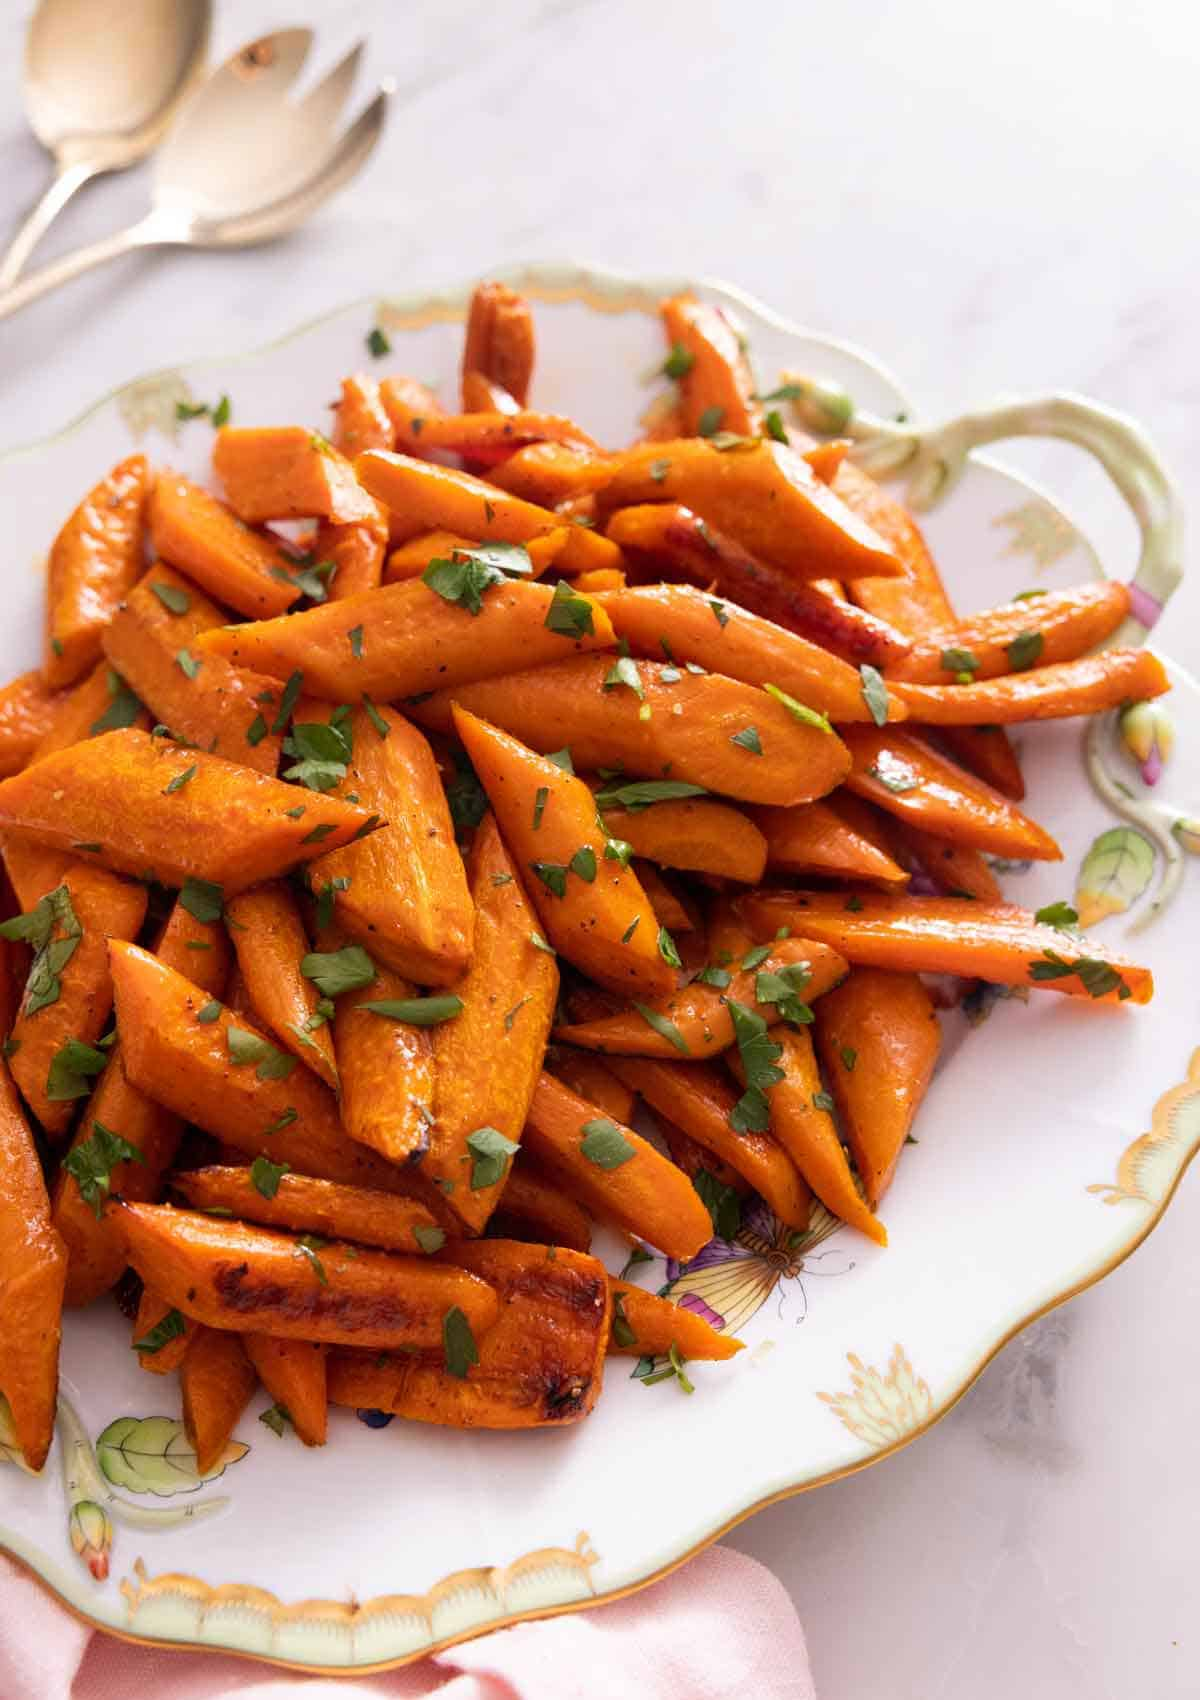 A platter of roasted carrots with parsley on top.